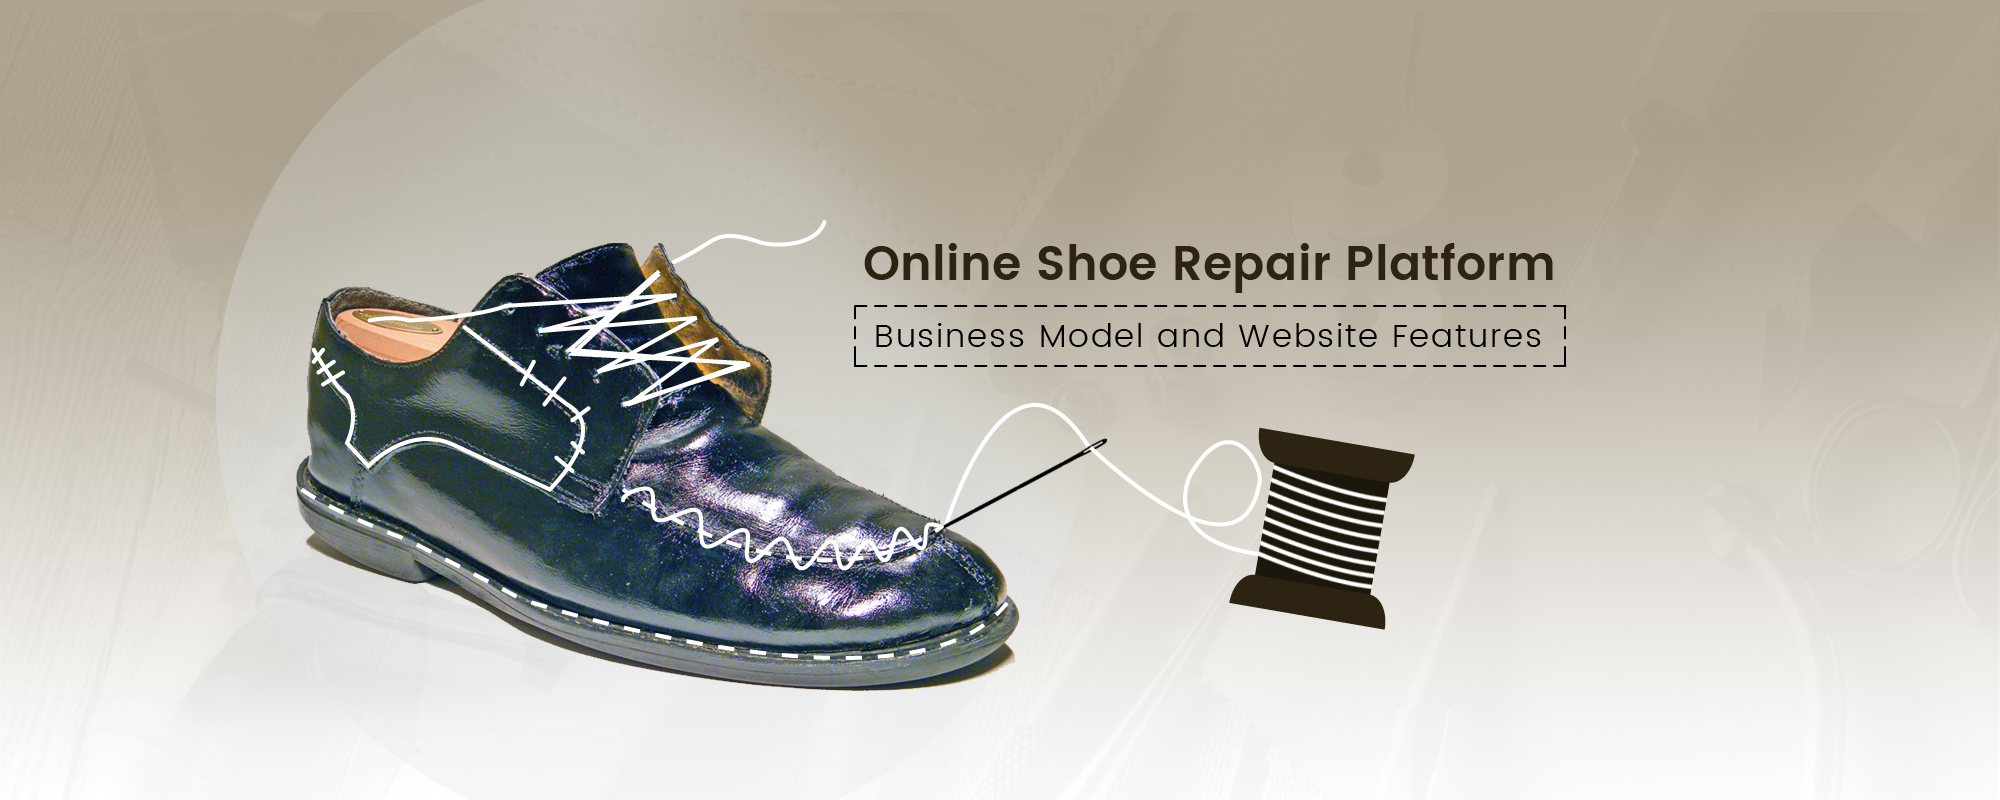 Online Shoe Repairing Platform– Fresh Business Idea for Aspiring Entrepreneurs